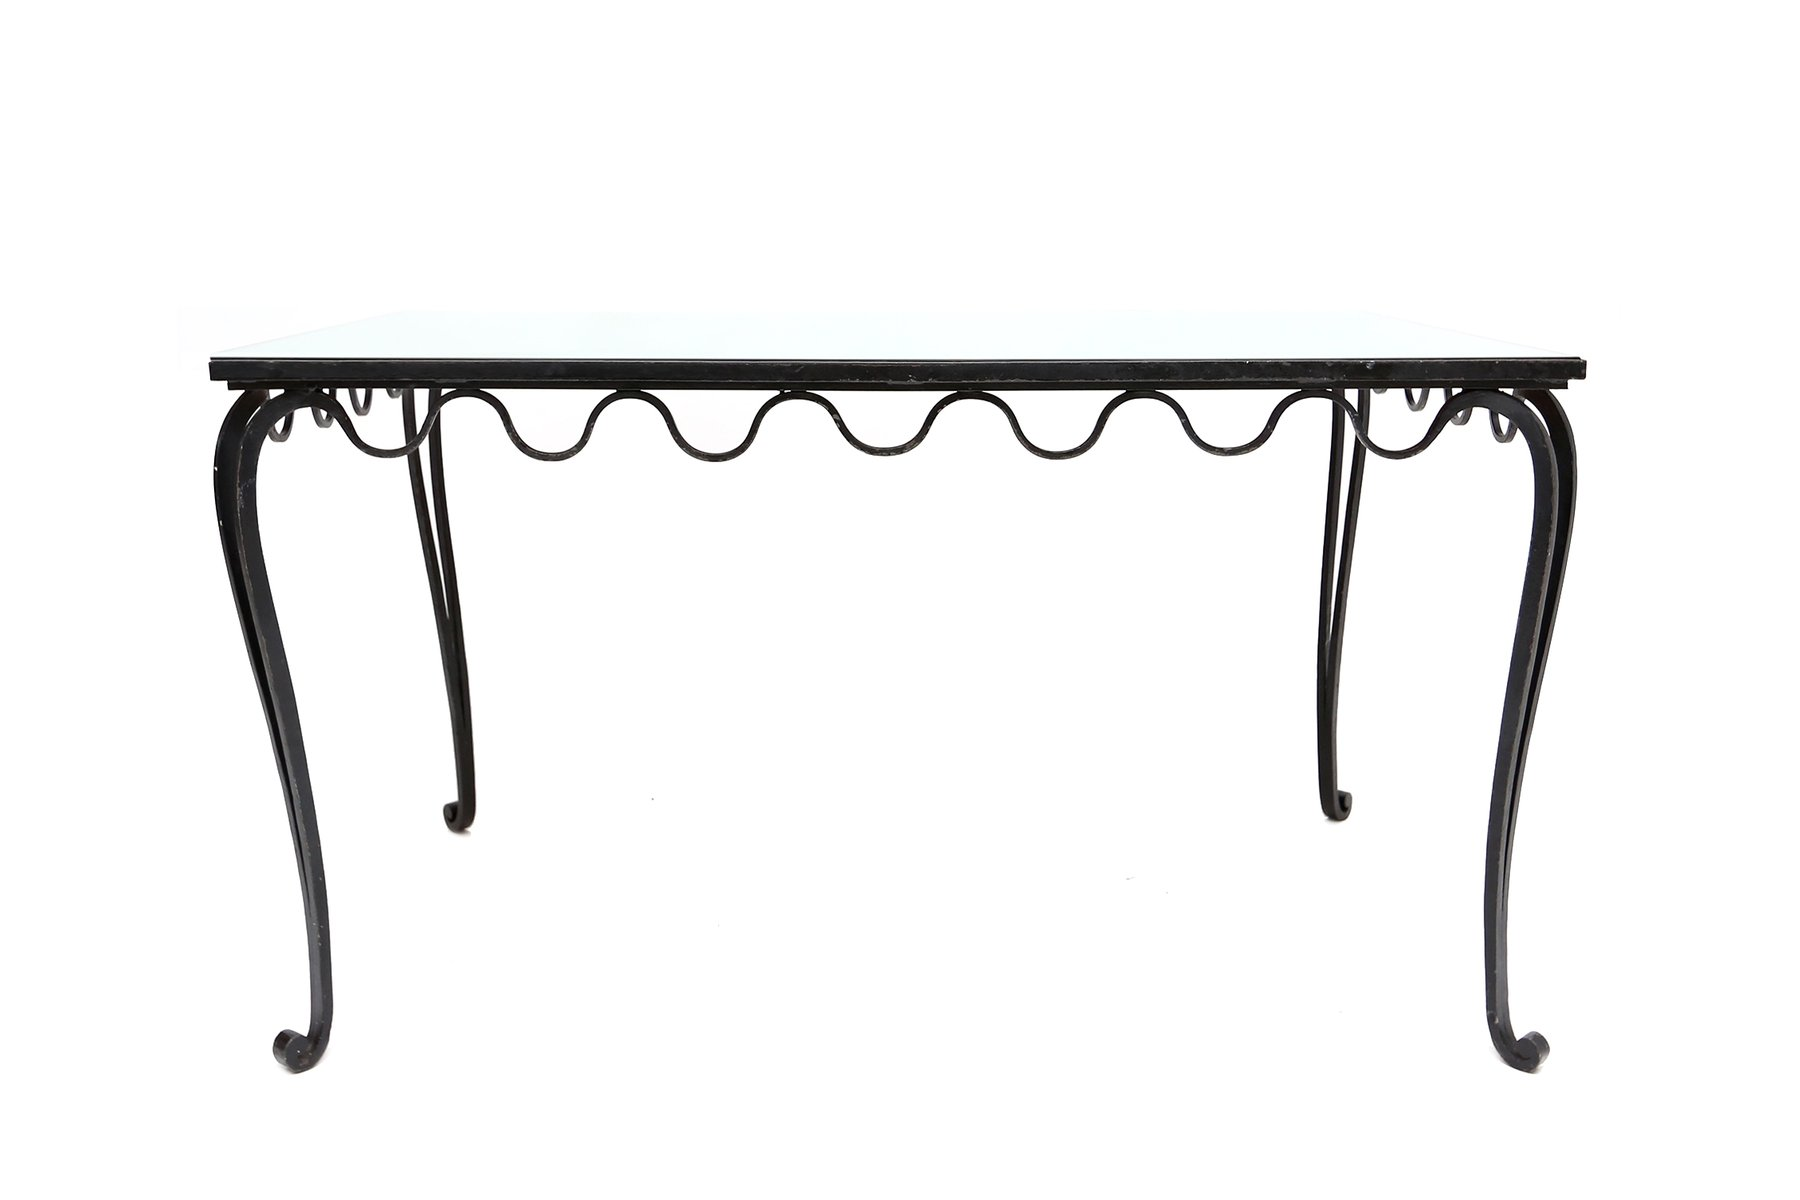 Wrought Iron Desk or Dining Table 1930s for sale at Pamono : wrought iron desk or dining table 1930s 2 from www.pamono.co.uk size 1800 x 1200 jpeg 51kB